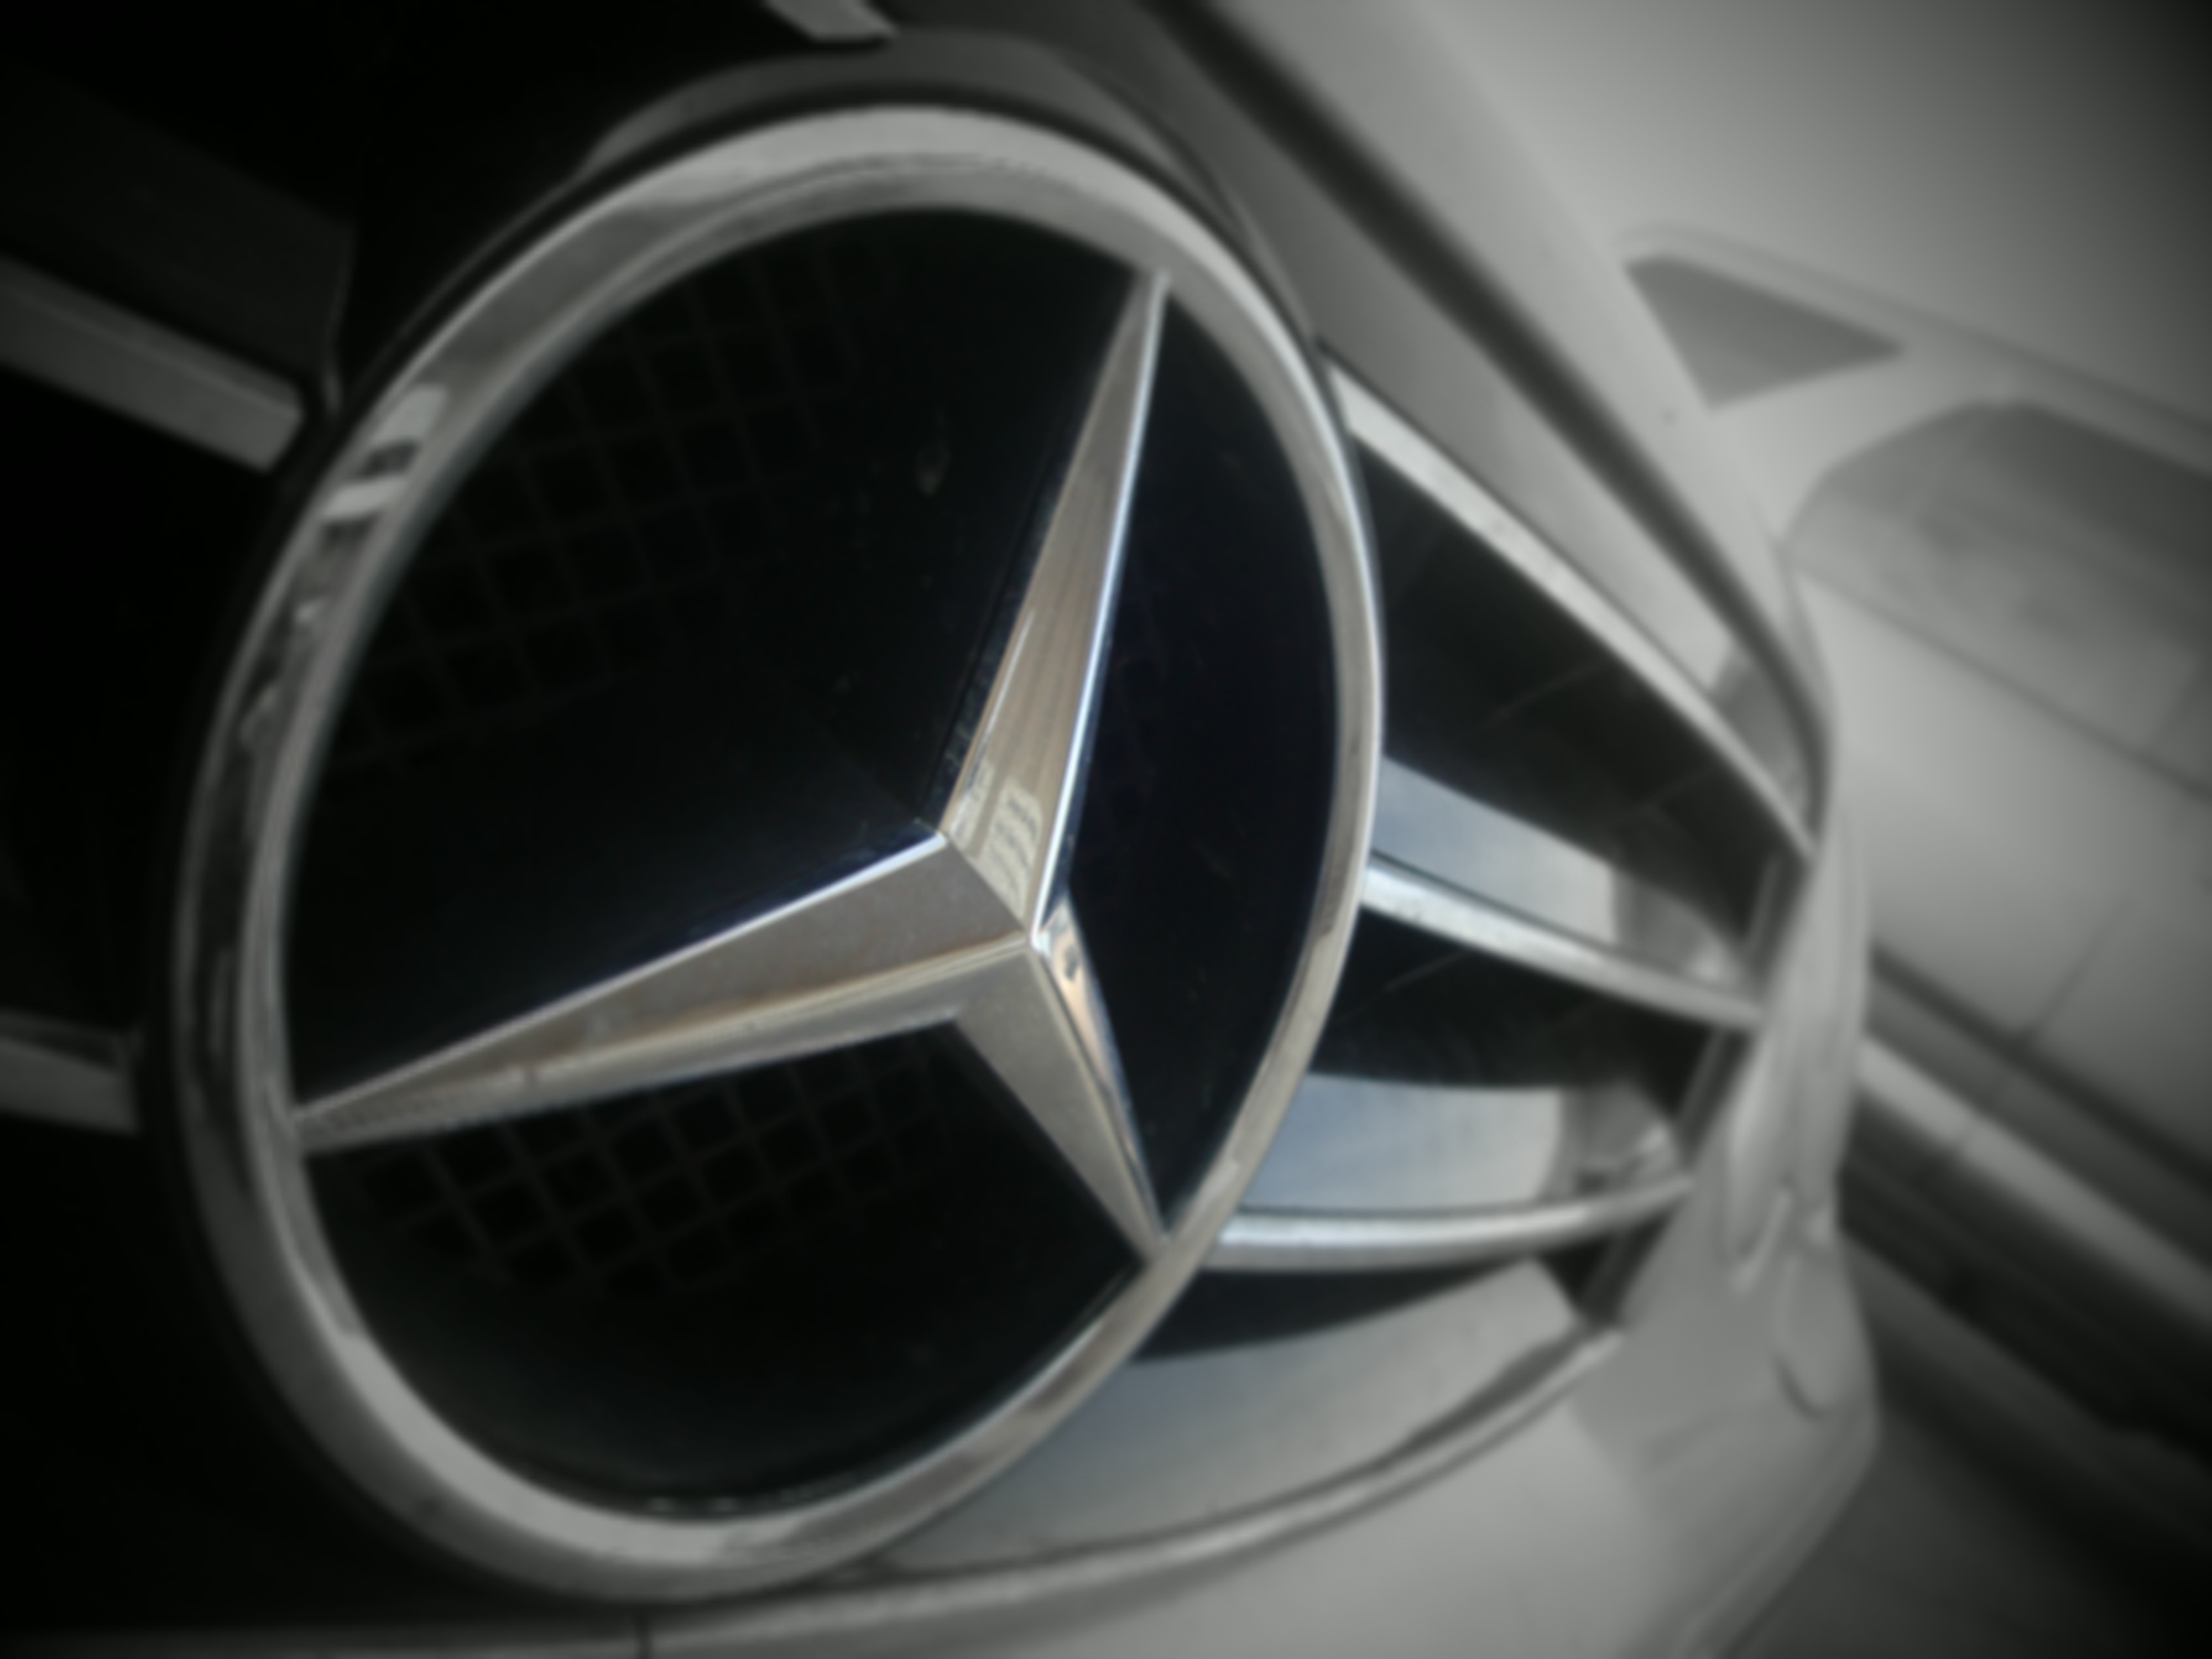 Black And White Cars Badges Mercedes Benz Wallpaper 4000x3000